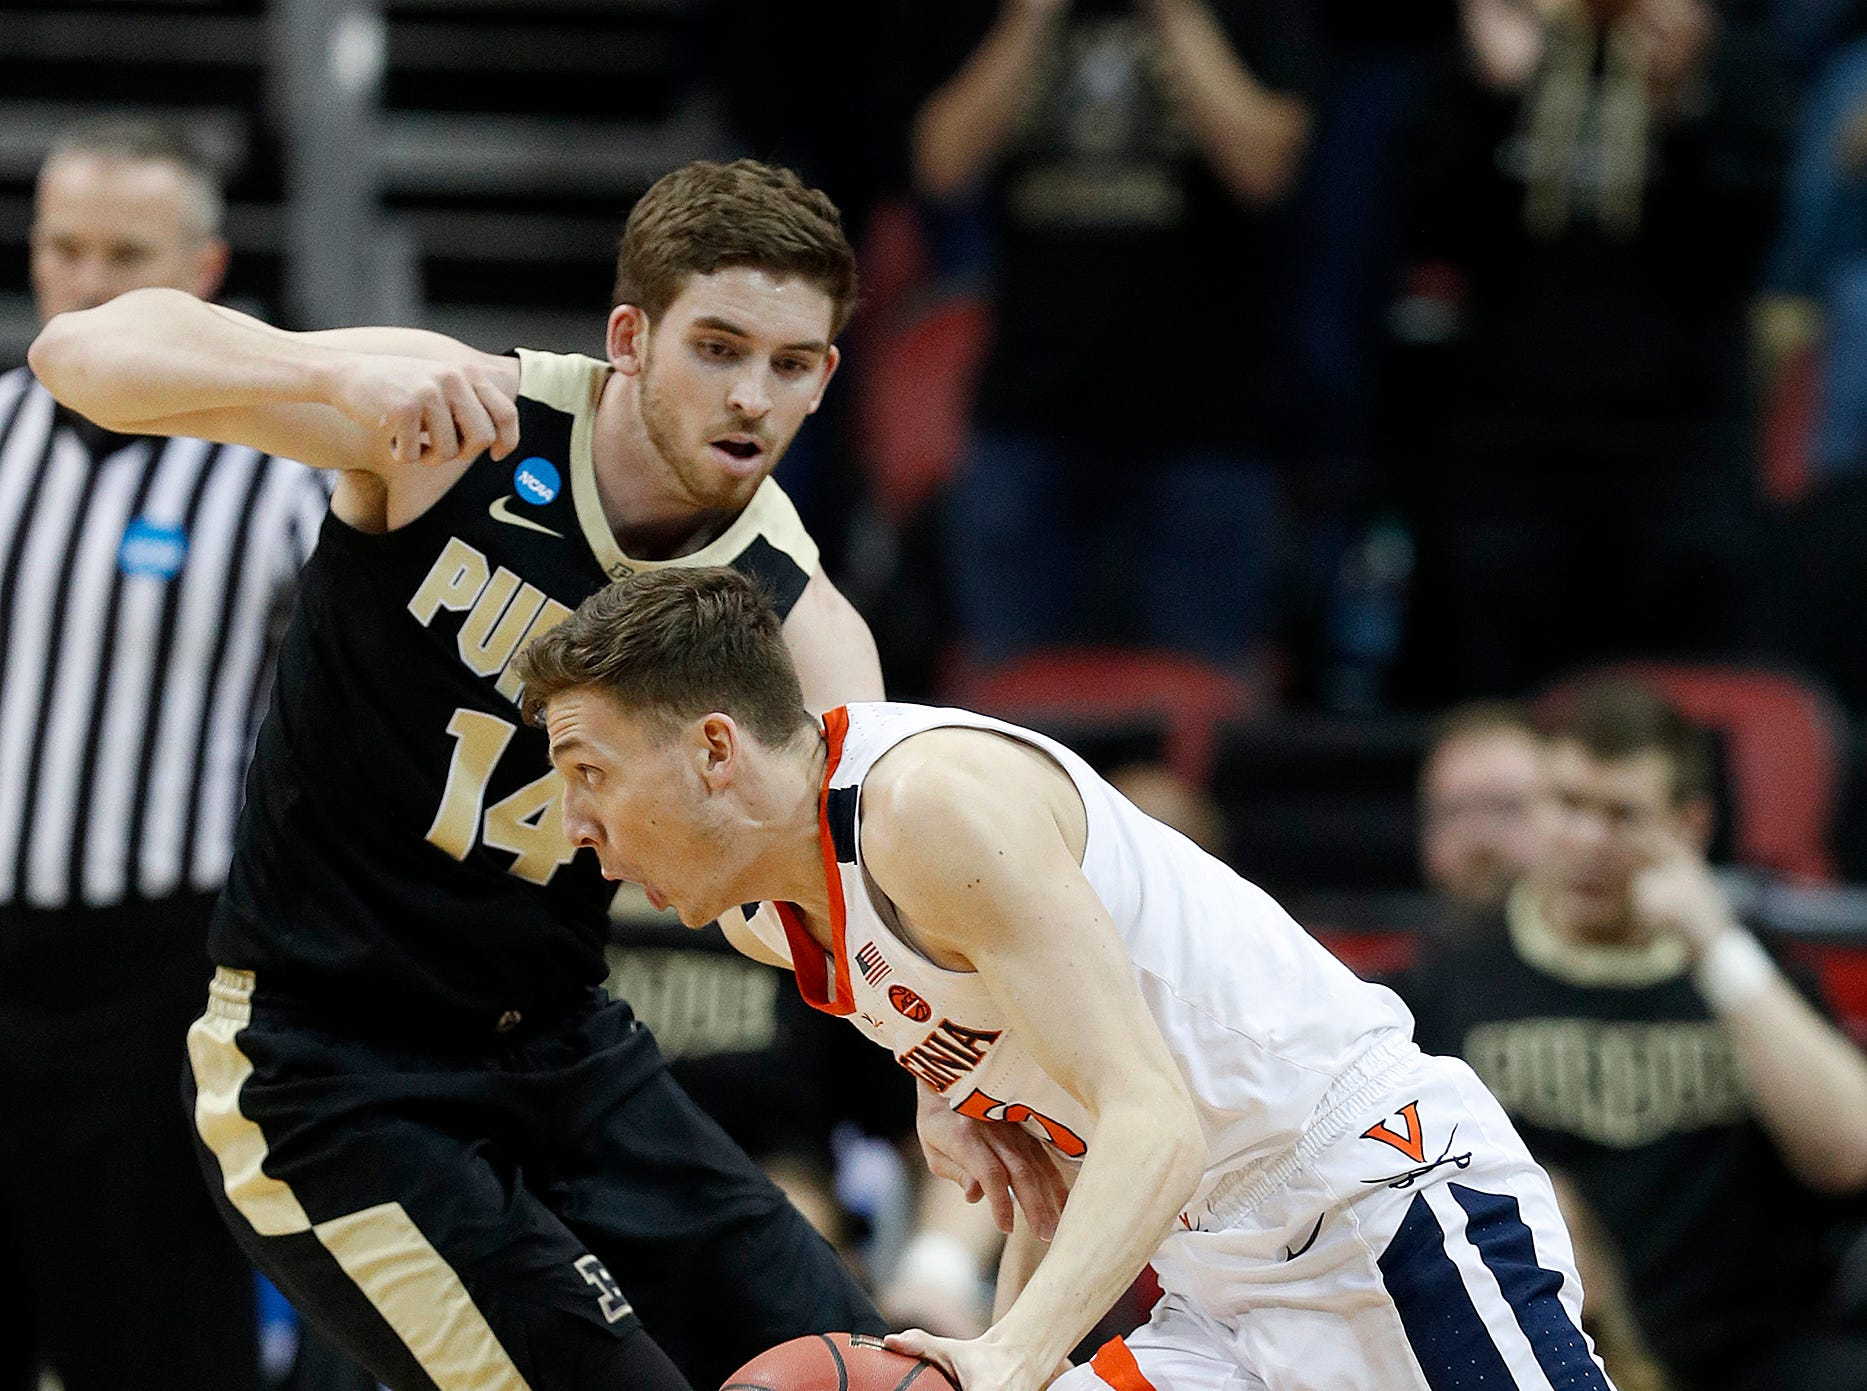 "Virginia Cavaliers guard Kyle Guy (5) driveson Purdue Boilermakers guard Ryan Cline (14) in the first half of their NCAA Division I Basketball Championship ""Elite 8"" basketball game at the KFC Yum! Center in Louisville, KY., on Saturday, Mar 30, 2019."